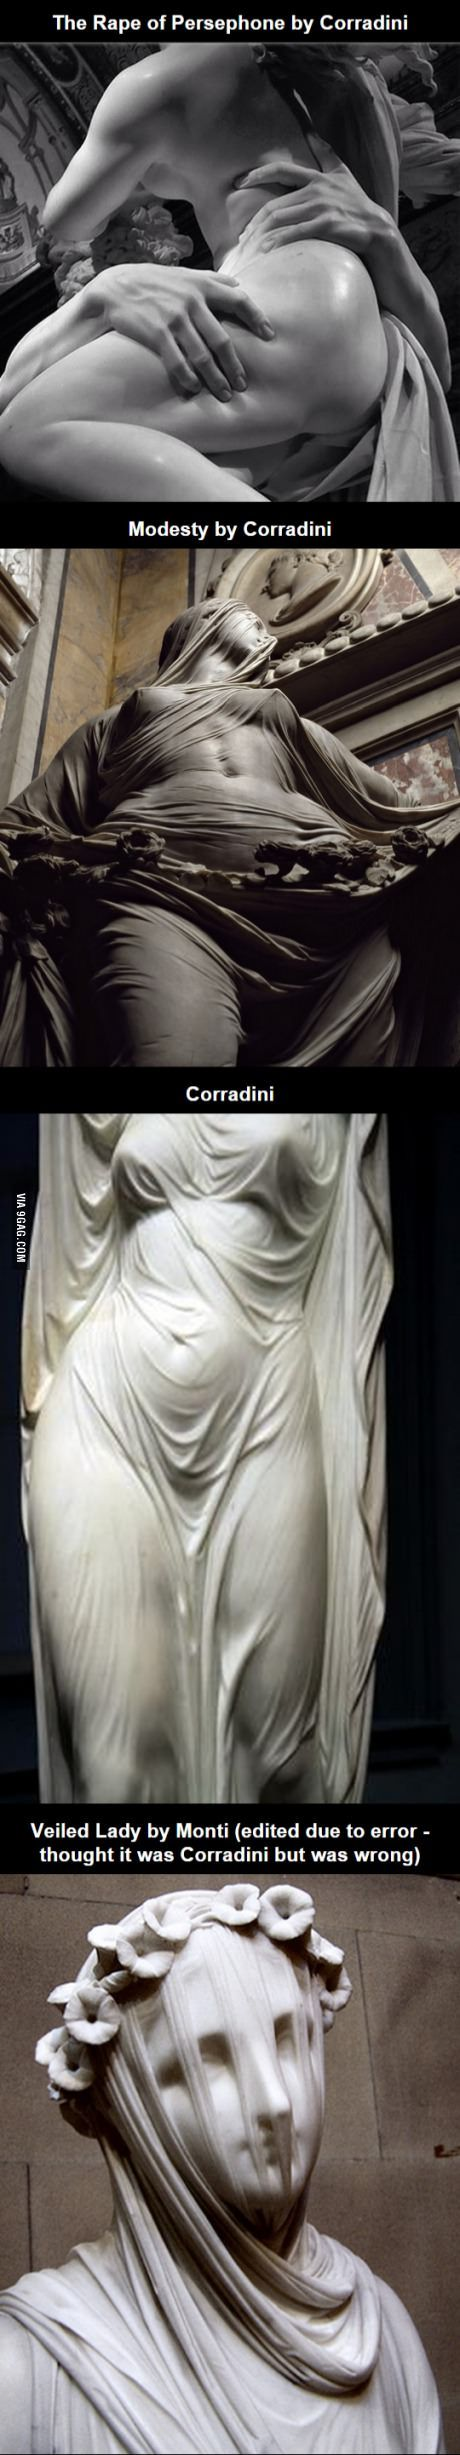 Statues by Antonio Corradini - they make you question that they are indeed made of marble